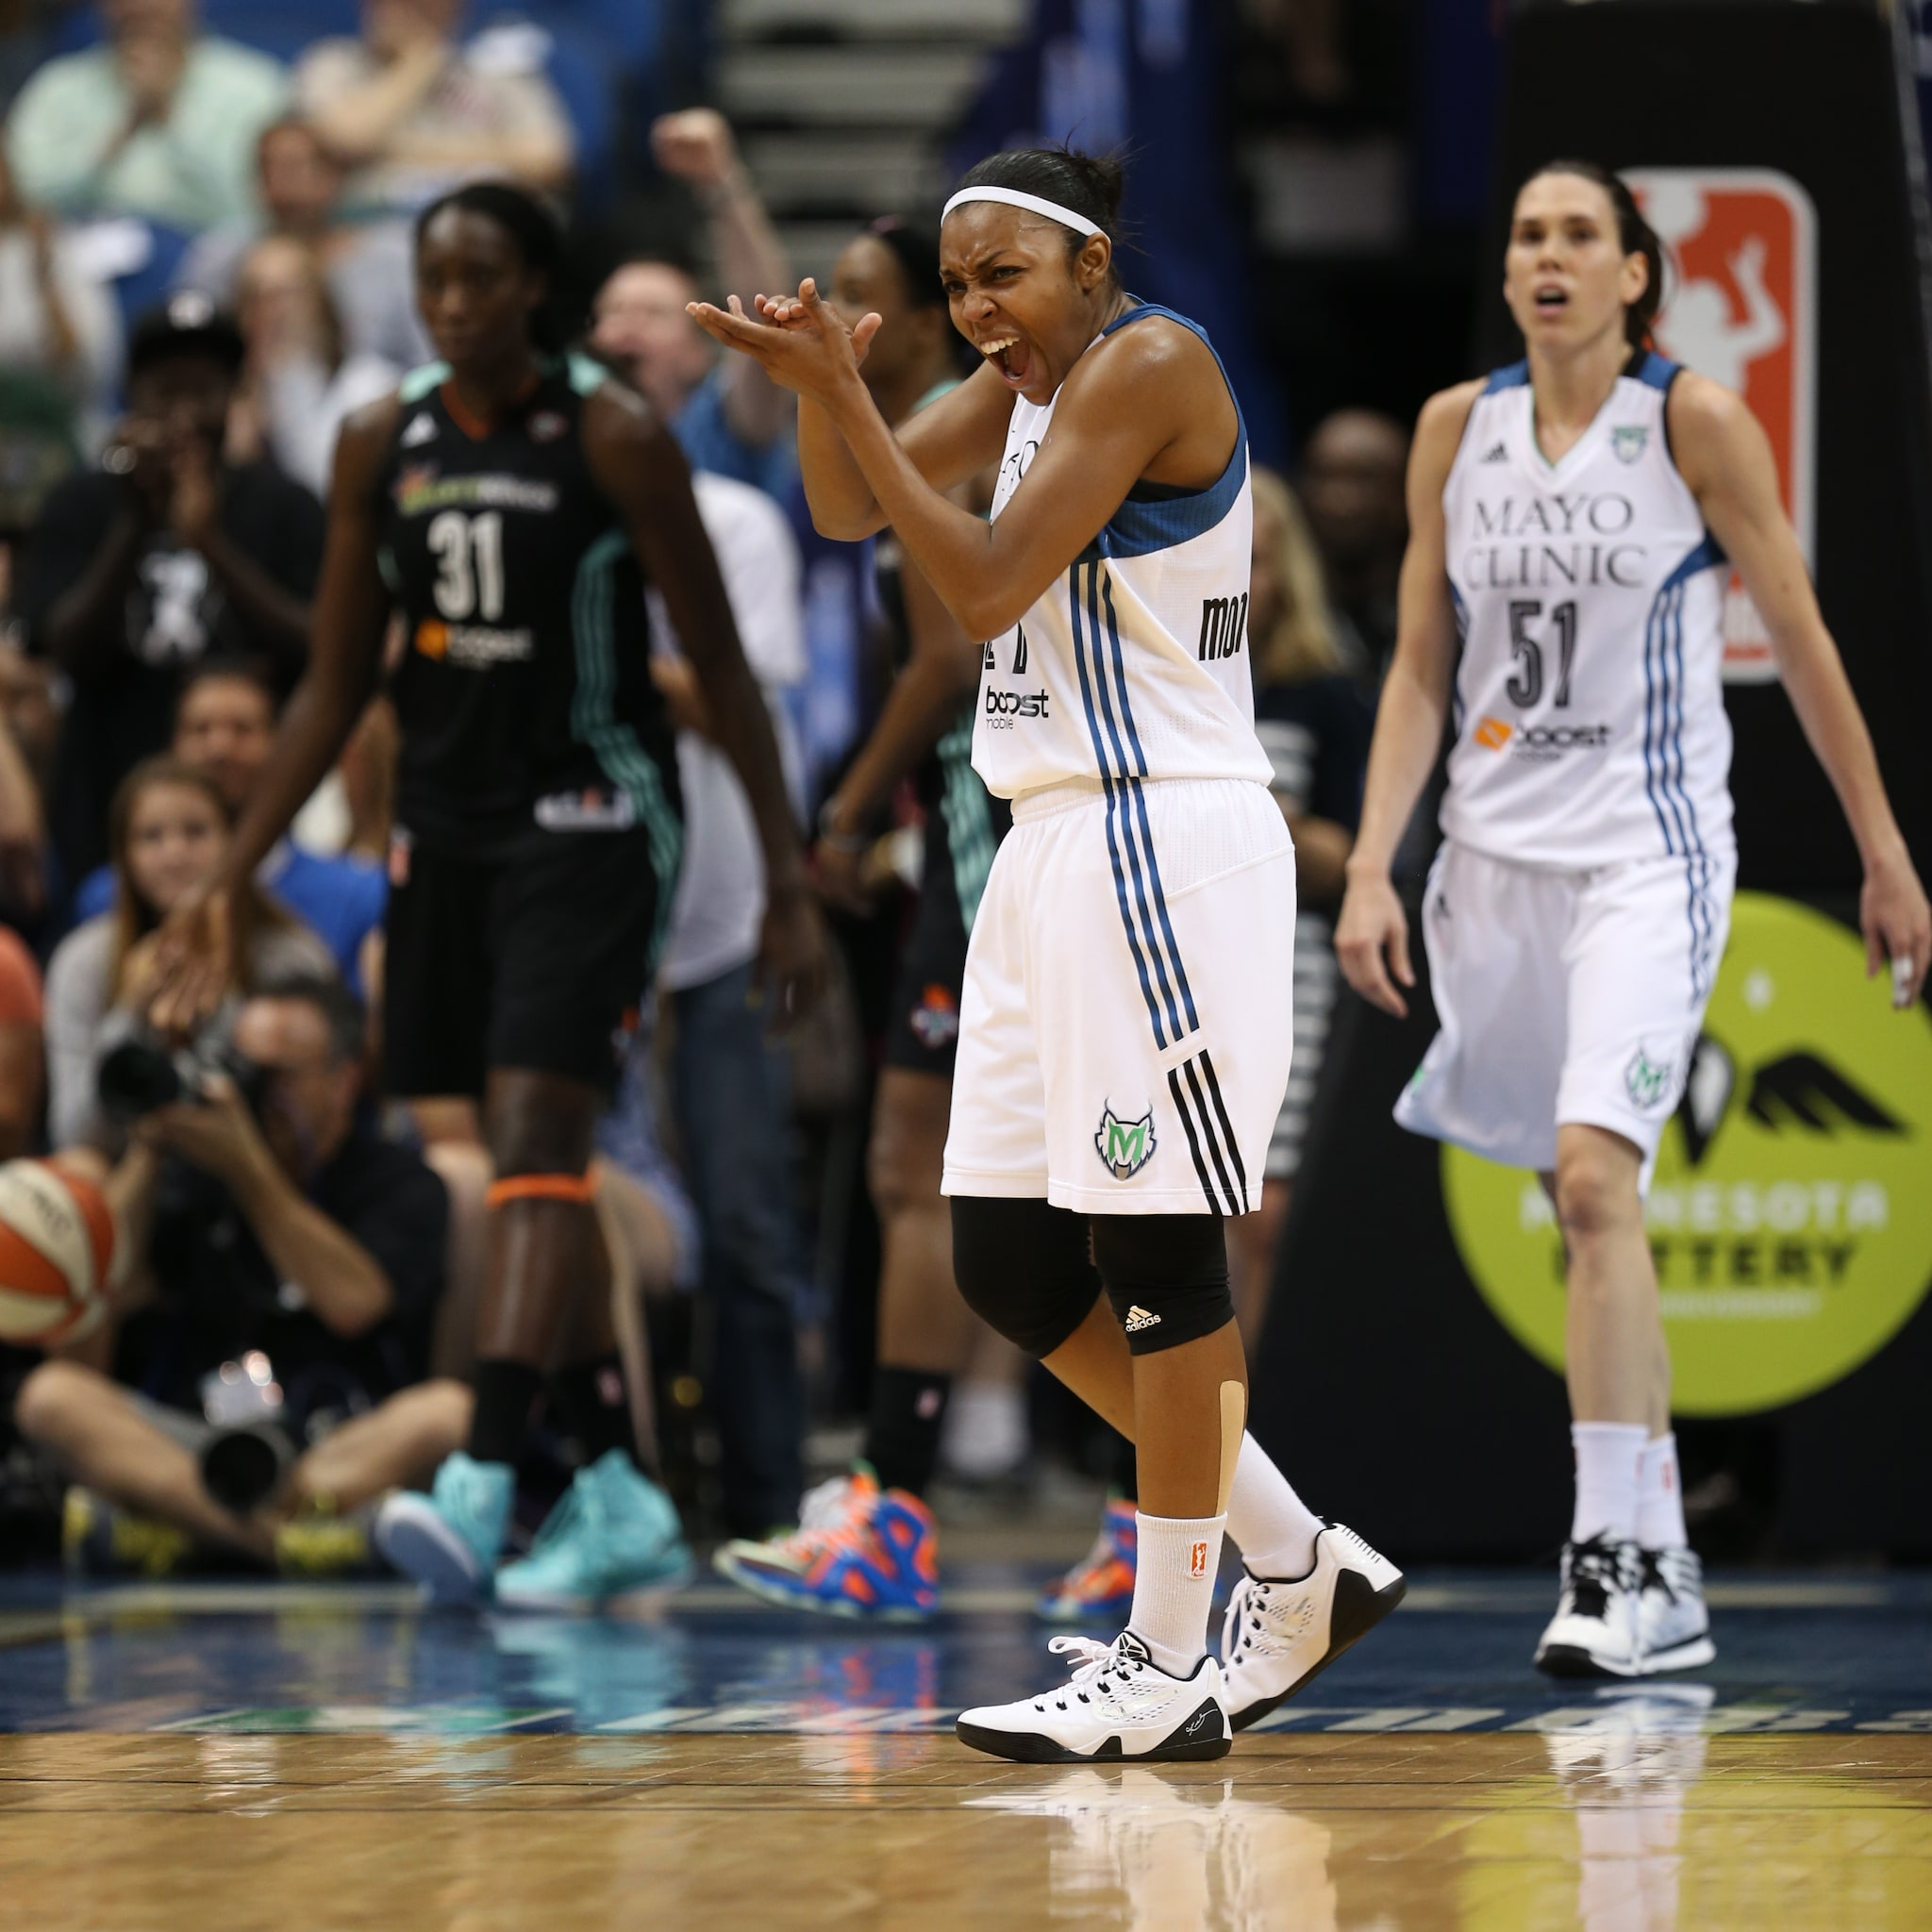 Making just her third start for the Lynx this season, guard Renee Montgomery played well on Sunday night, finishing with 14 points, seven assists and two steals.